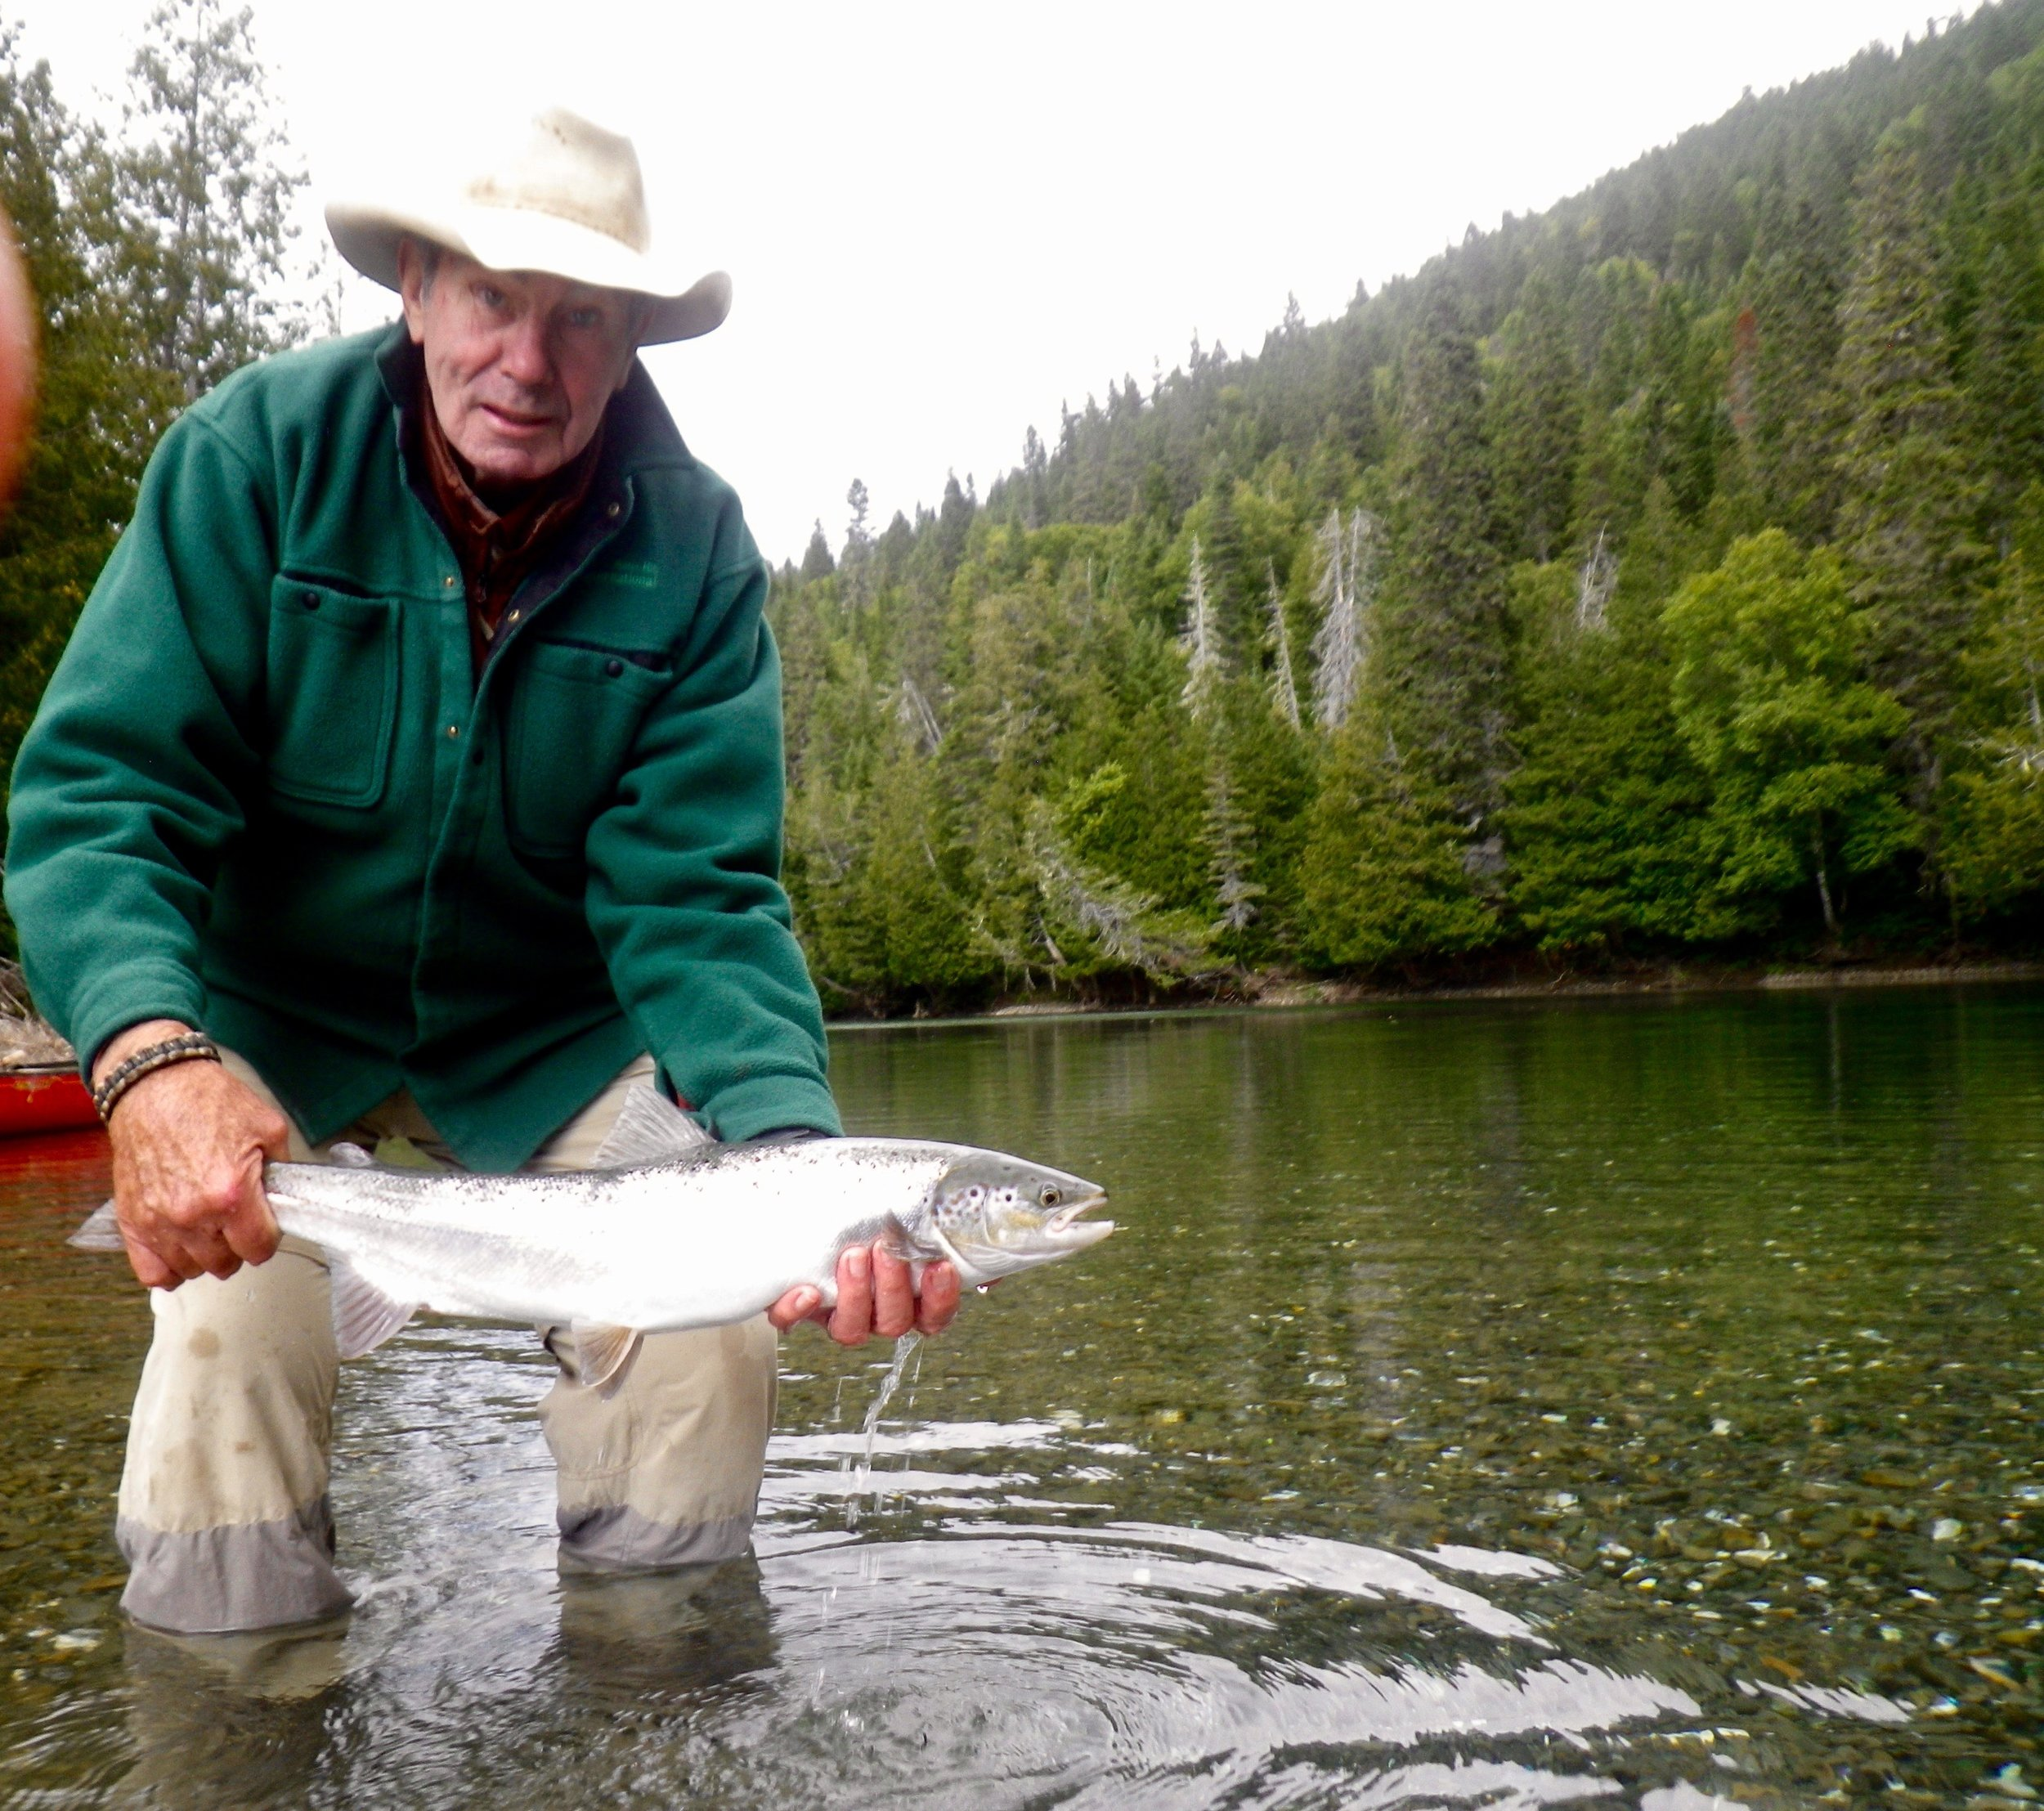 This was John McGonagle's first trip to Camp Bonaventure, but not his last, see you next year John! Nice salmon!